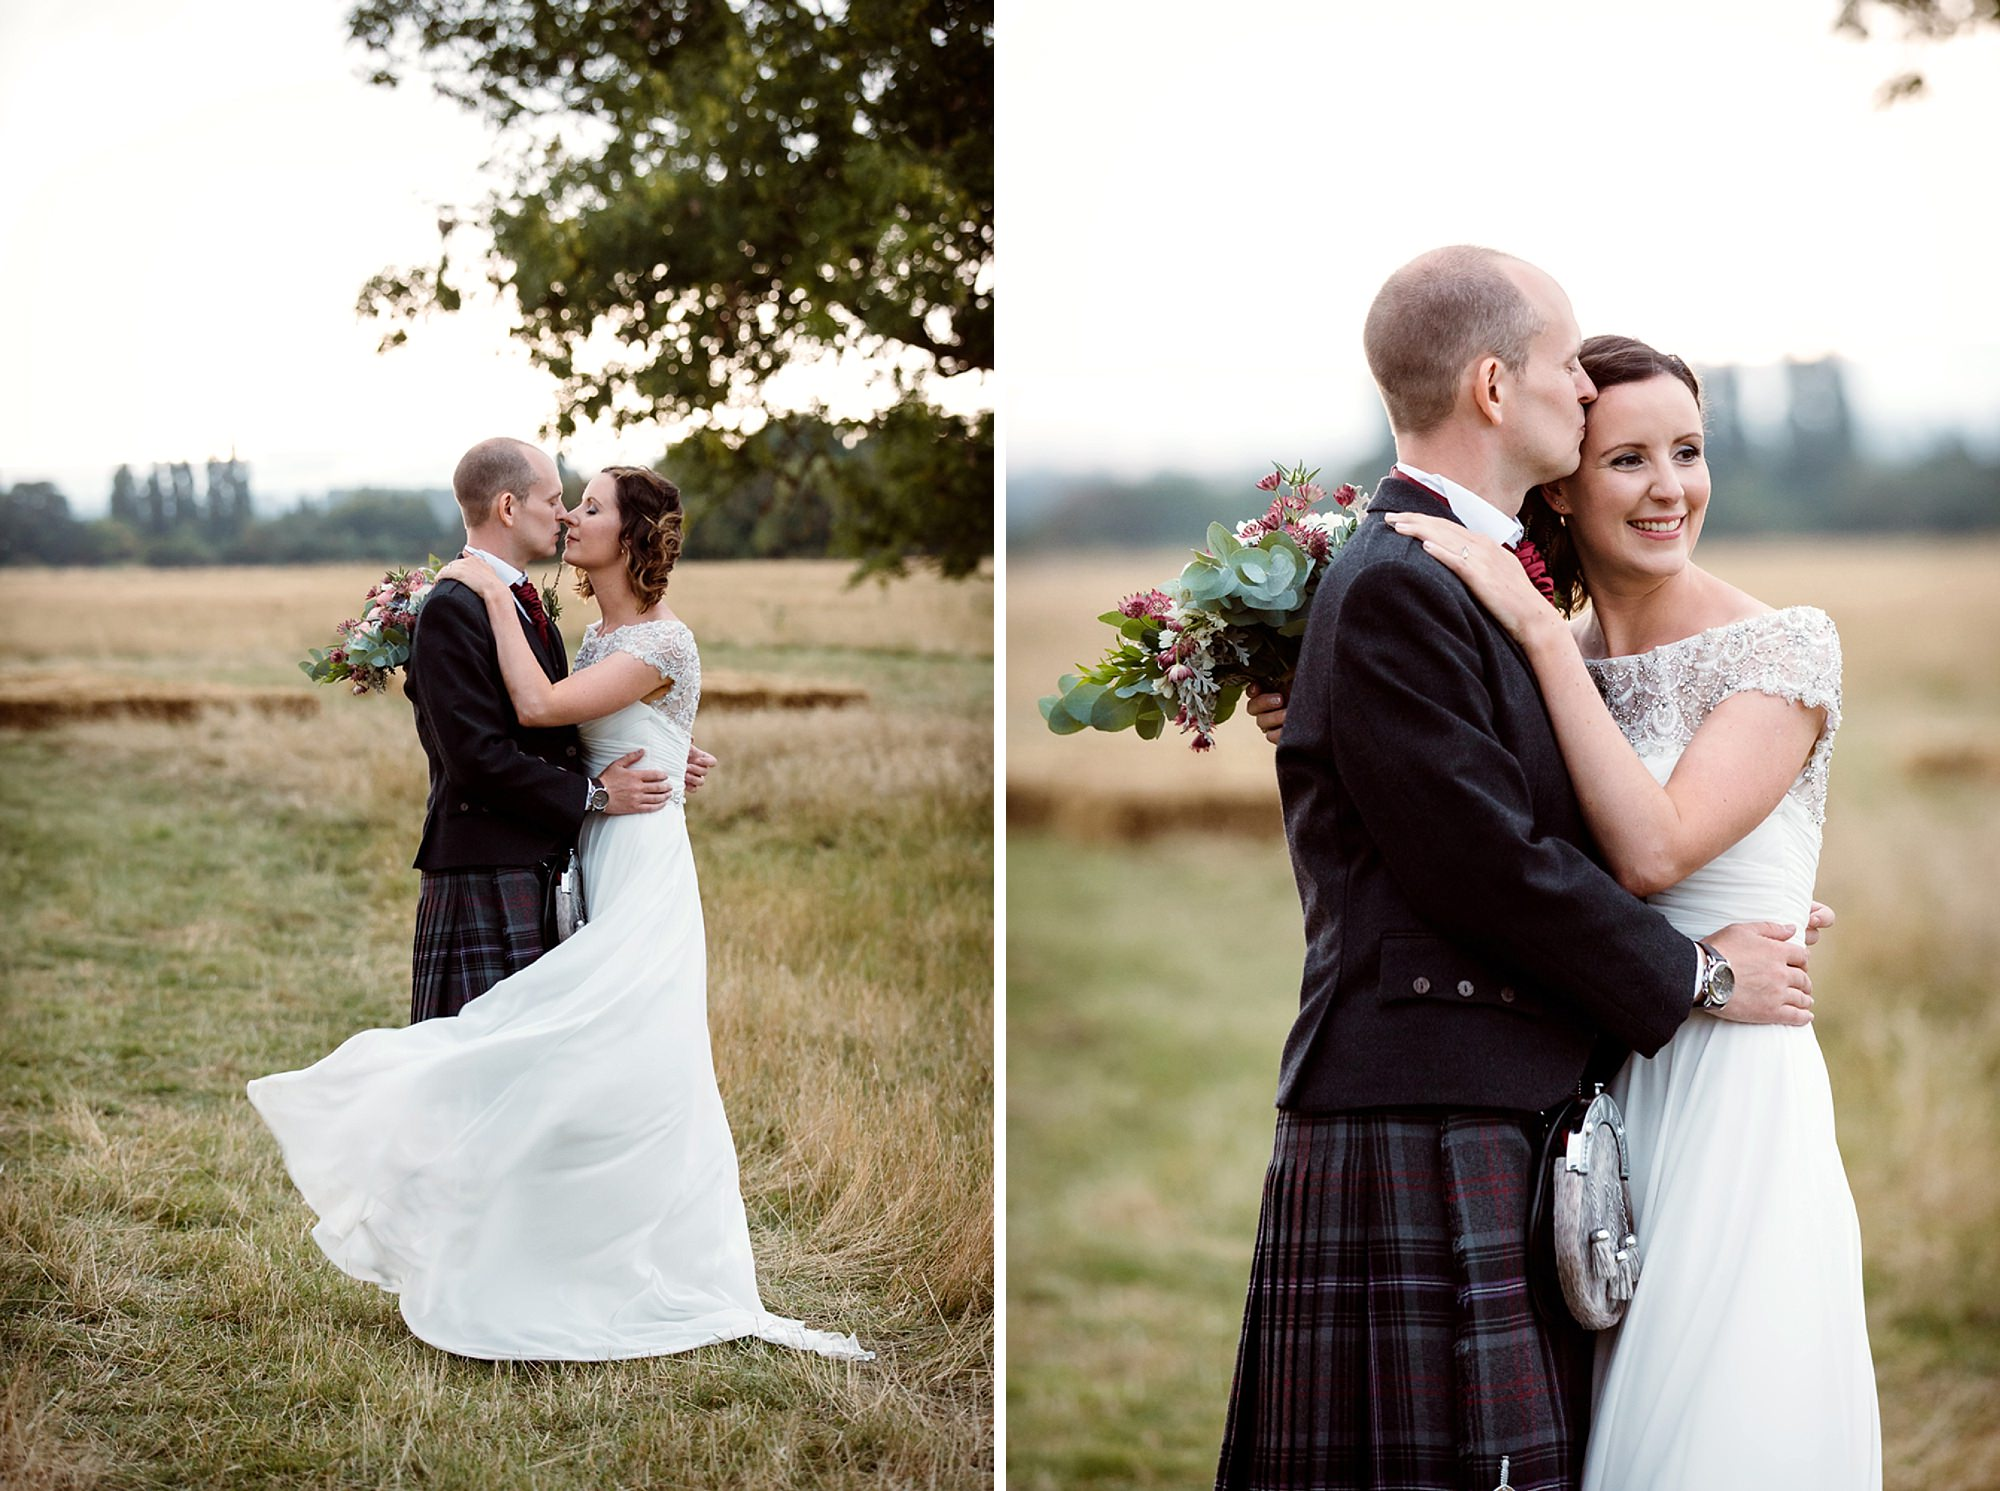 outdoor humanist wedding photography bride and groom hug